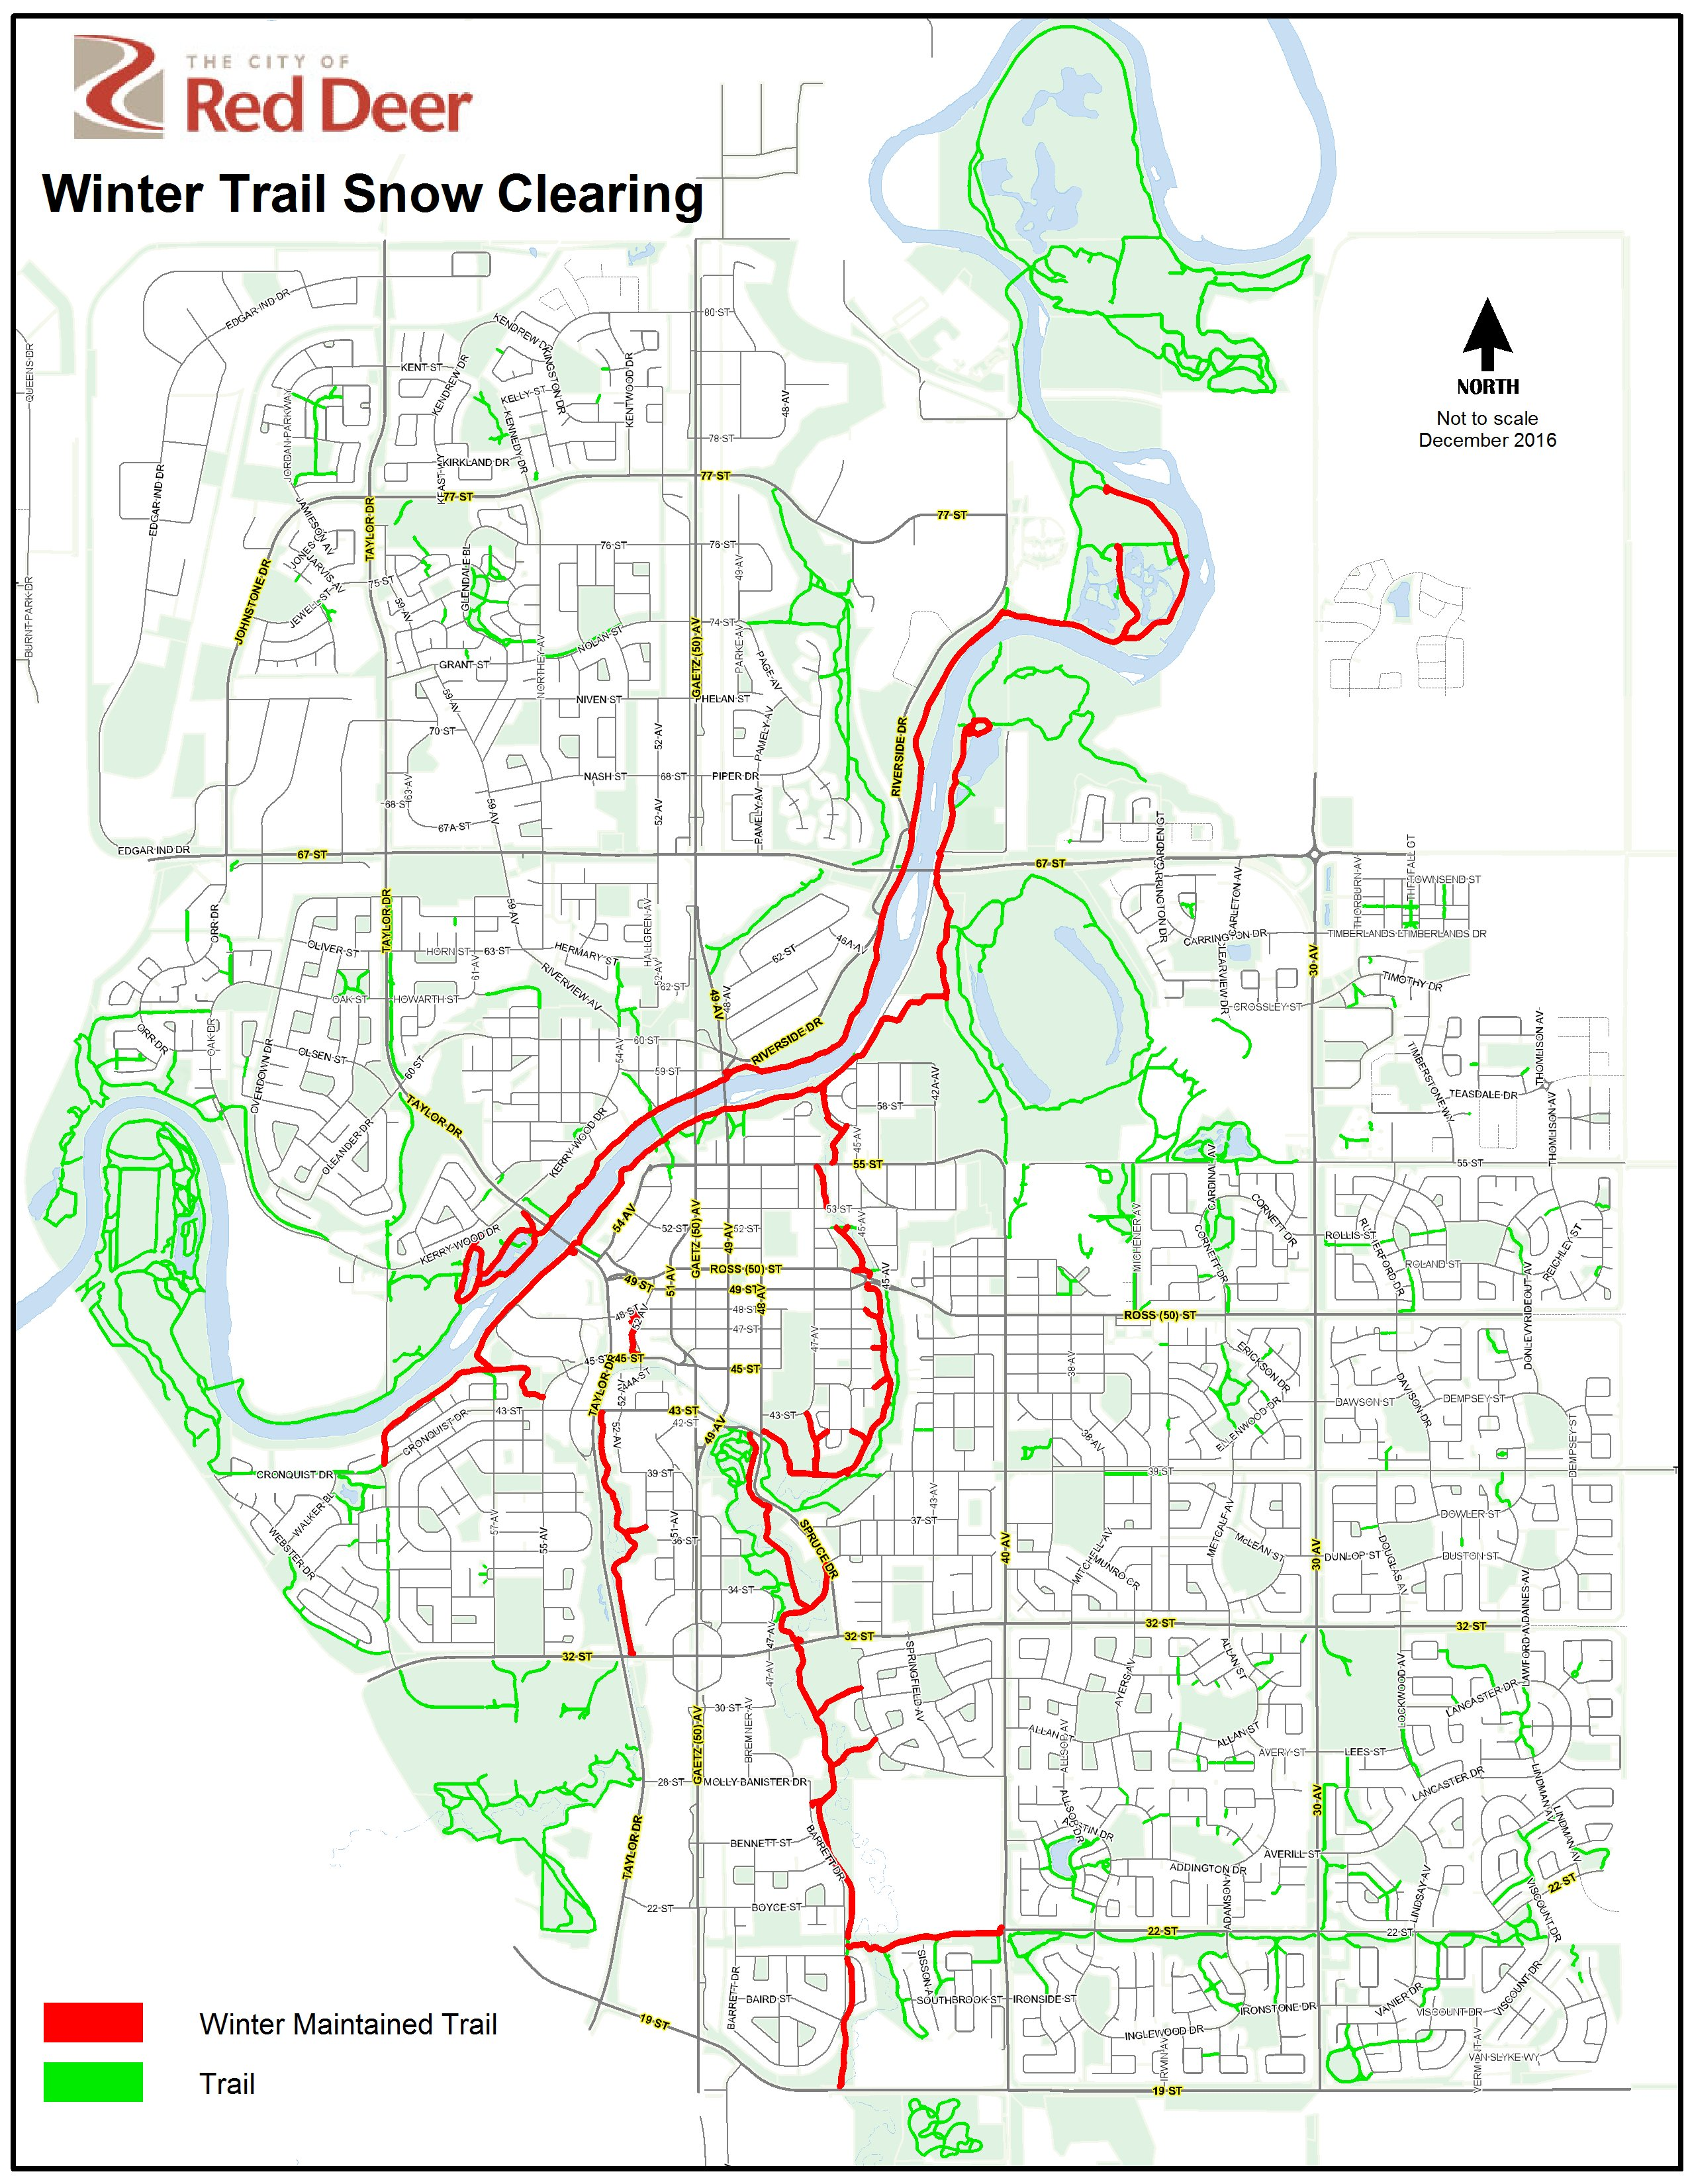 Parks and Trails - The City of Red Deer on